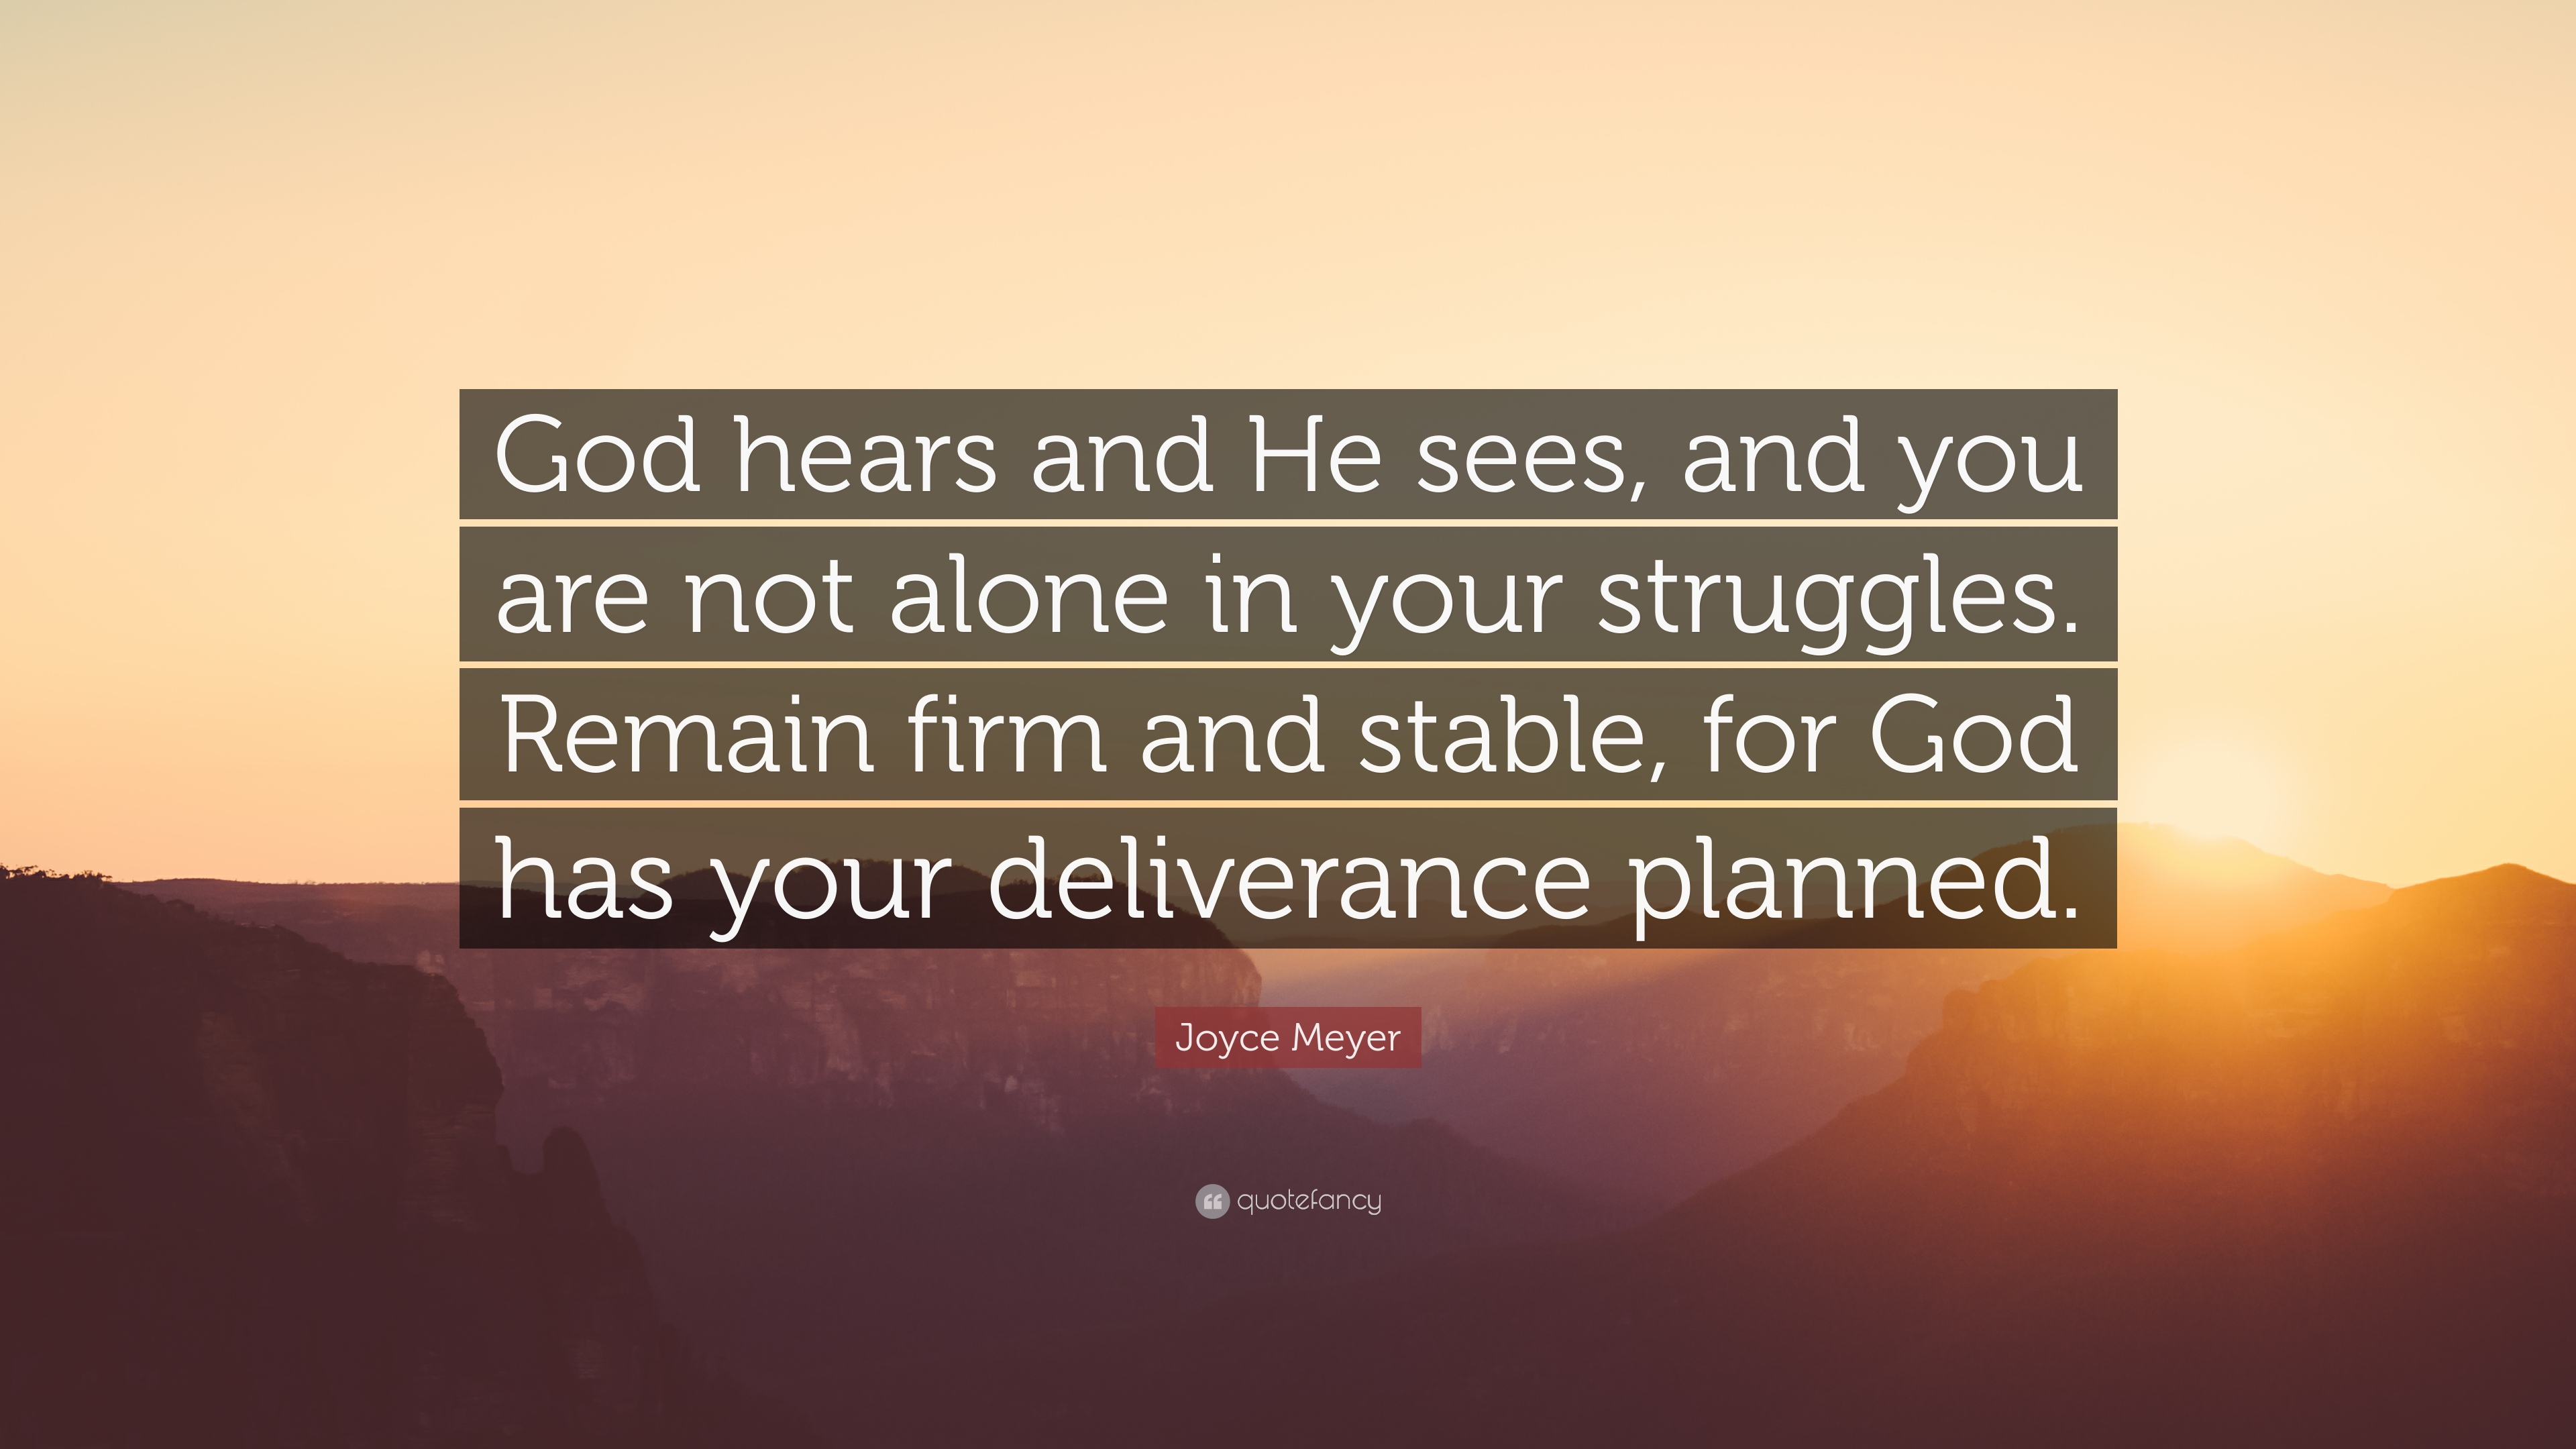 Joyce Meyer Quote God Hears And He Sees And You Are Not Alone In